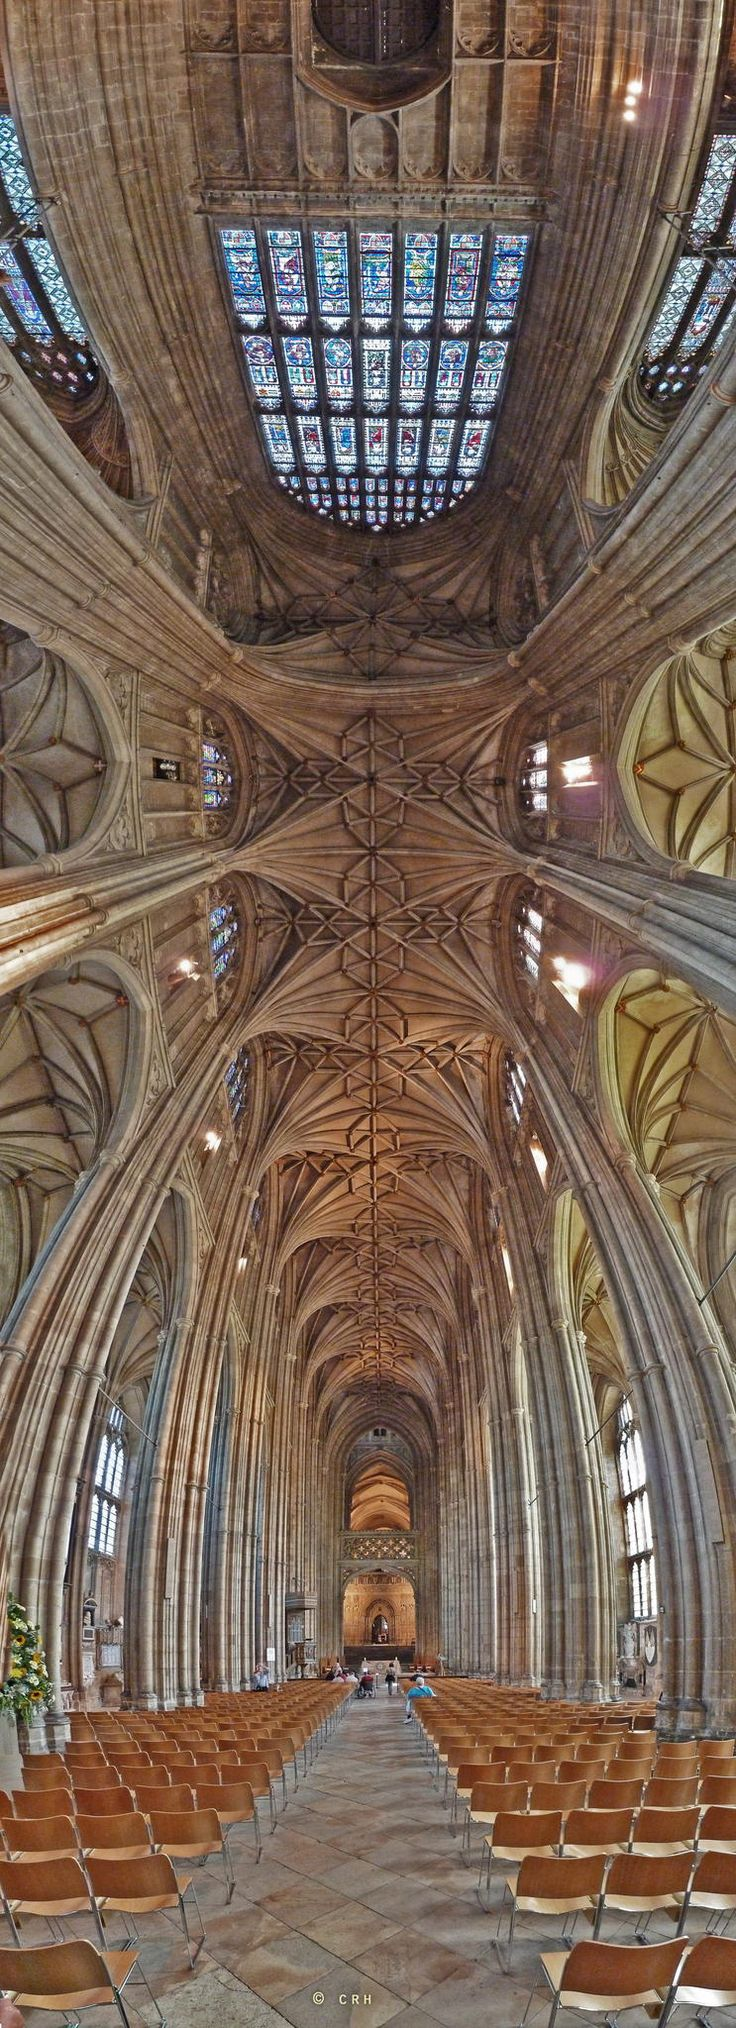 Interior of Canterbury Cathedral, Canterbury, Kent, England.     My son had his Graduation Ceremony here.....So So So proud